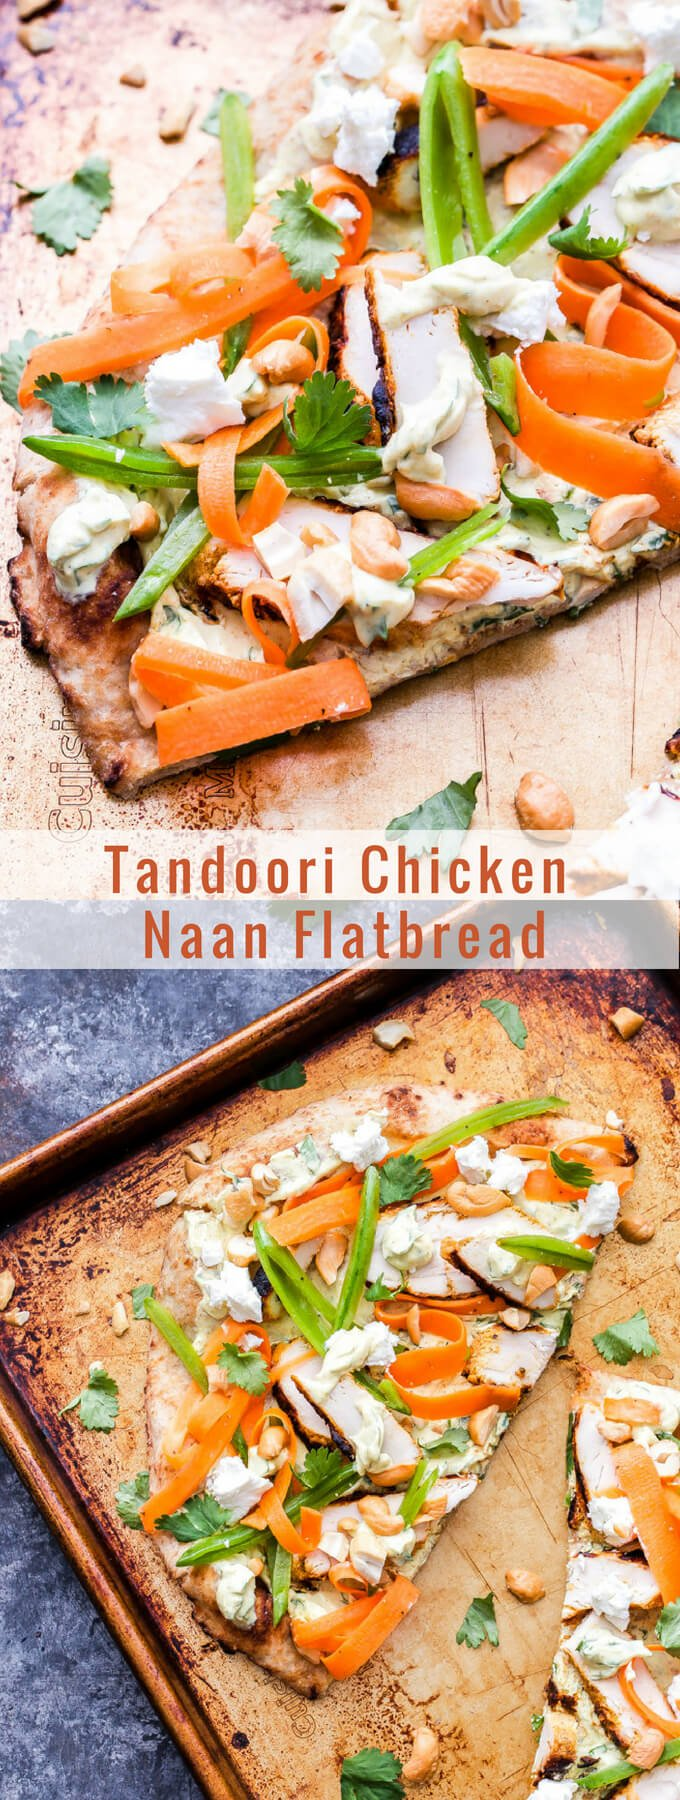 Tandoori Chicken Naan Flatbread is perfect for dinner or an appetizer. Flavorful, grilled, Indian spiced chicken, crisp sugar snap peas and carrot ribbons all piled onto yogurt topped naan flatbreads. It's a bite you'll never forget! #naan #flatbread #tandoorichicken